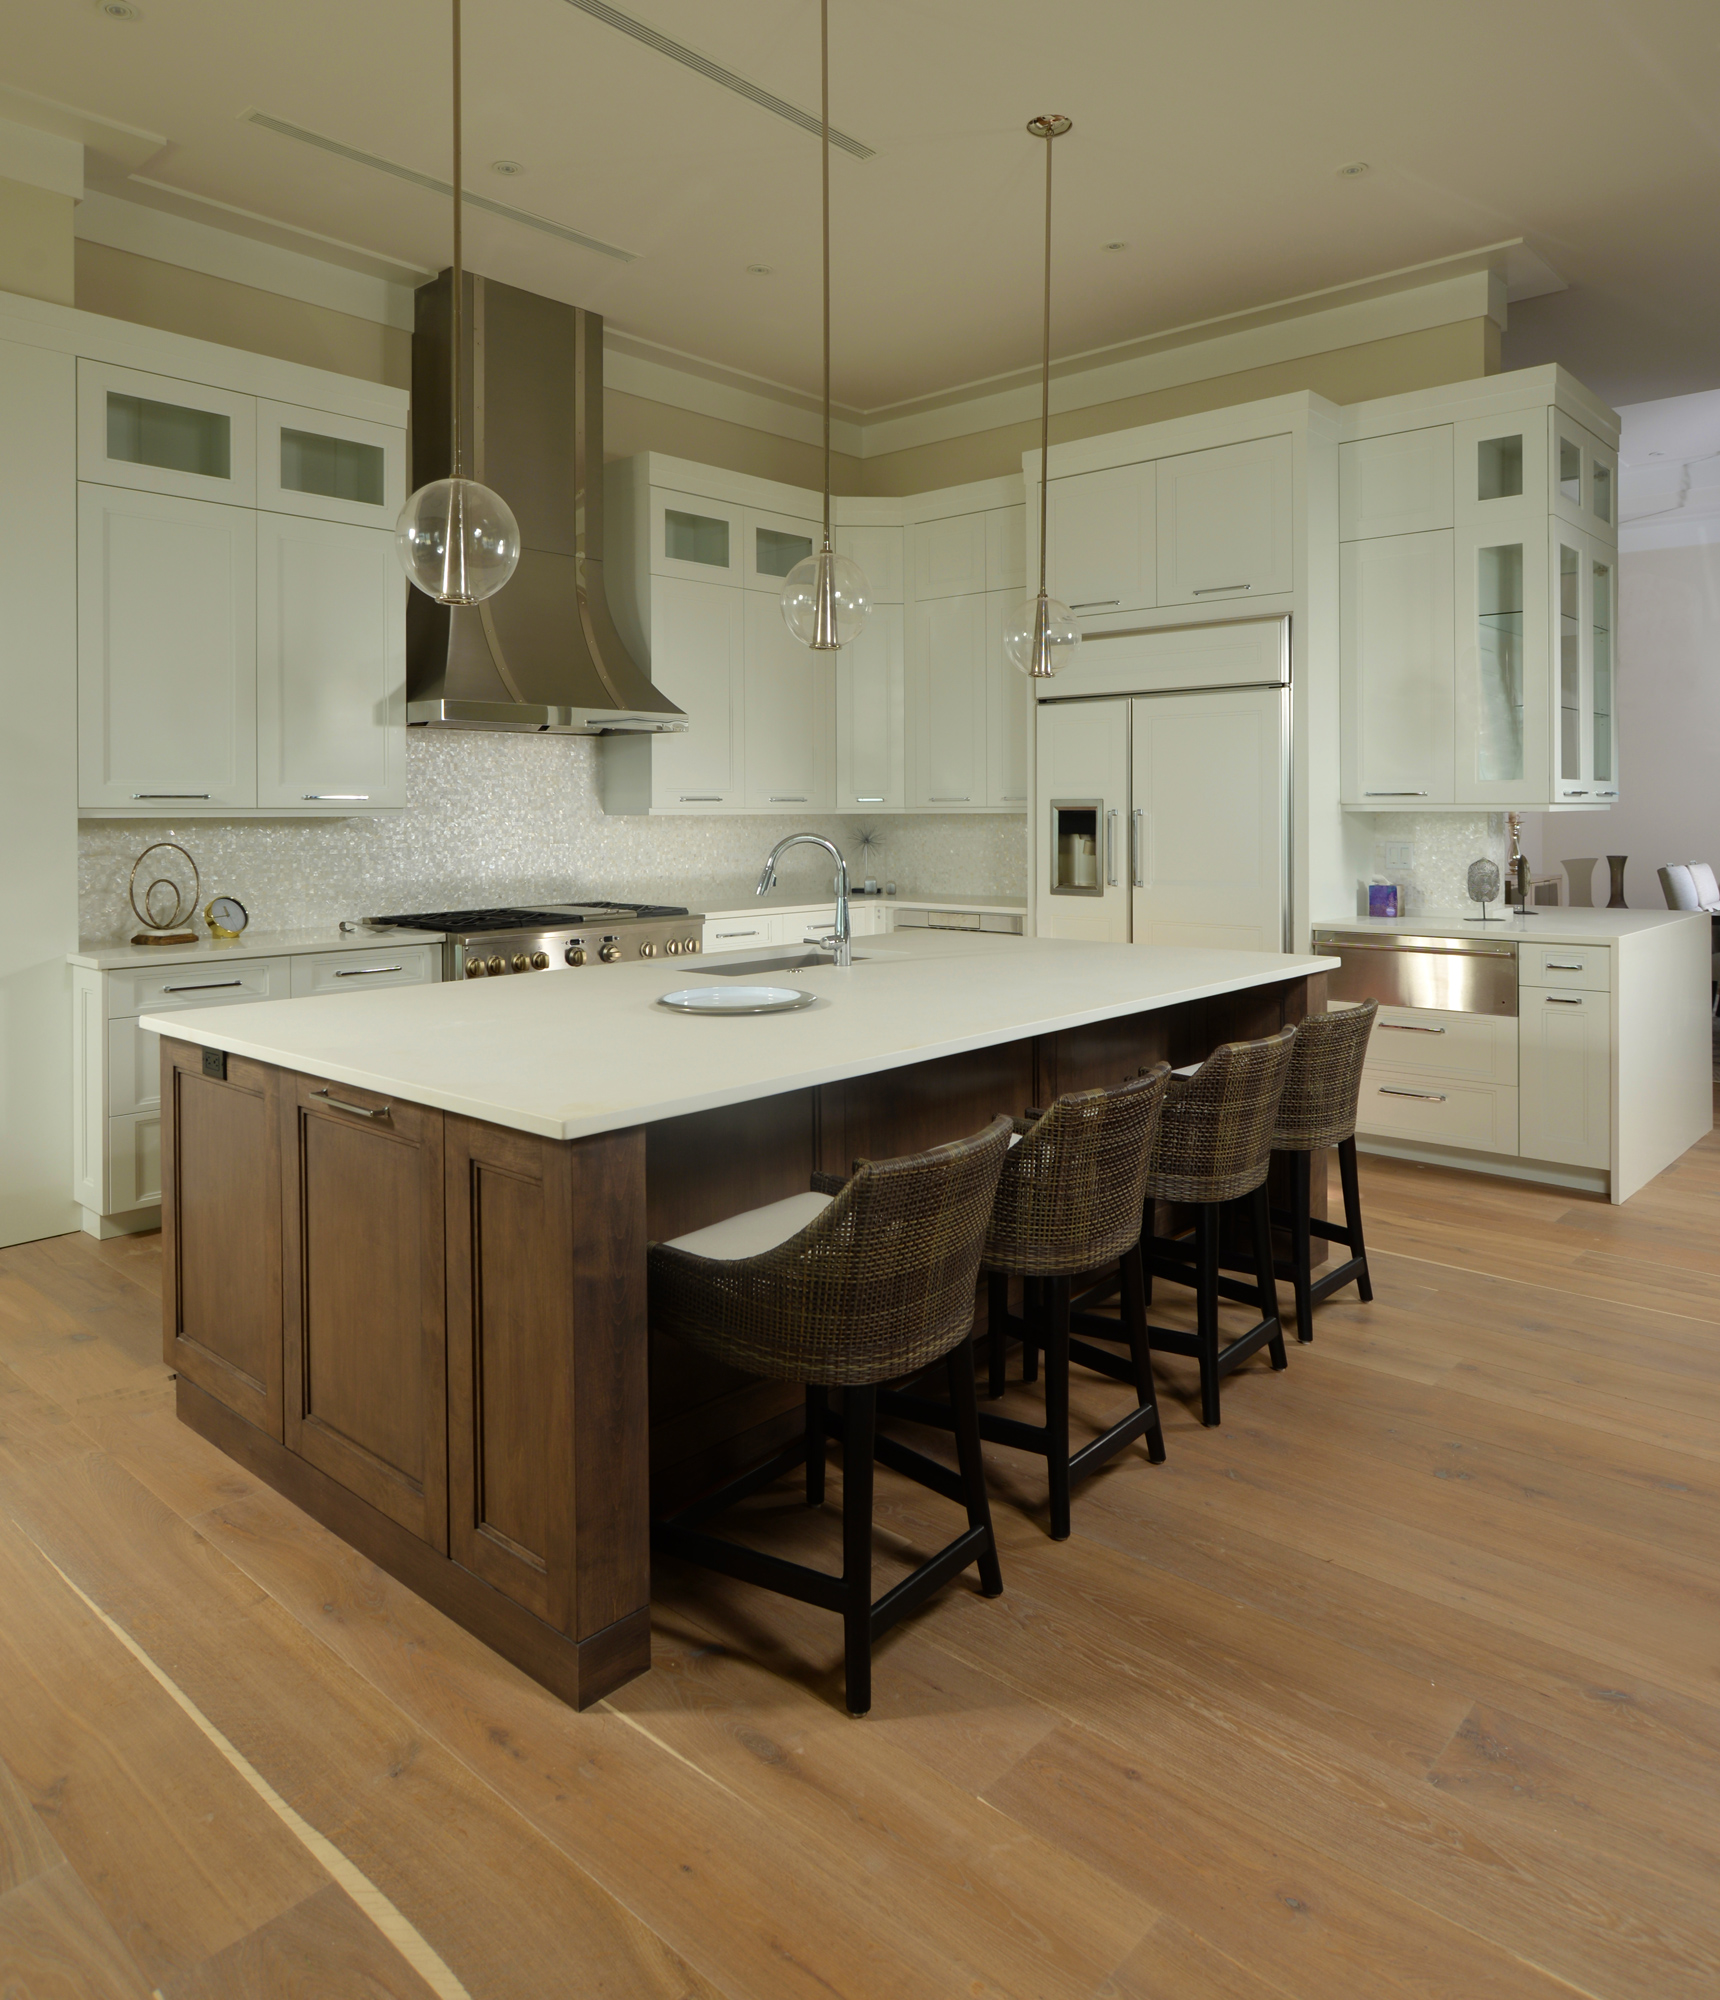 luxury kitchen photos | dunlap construction | vero beach fl